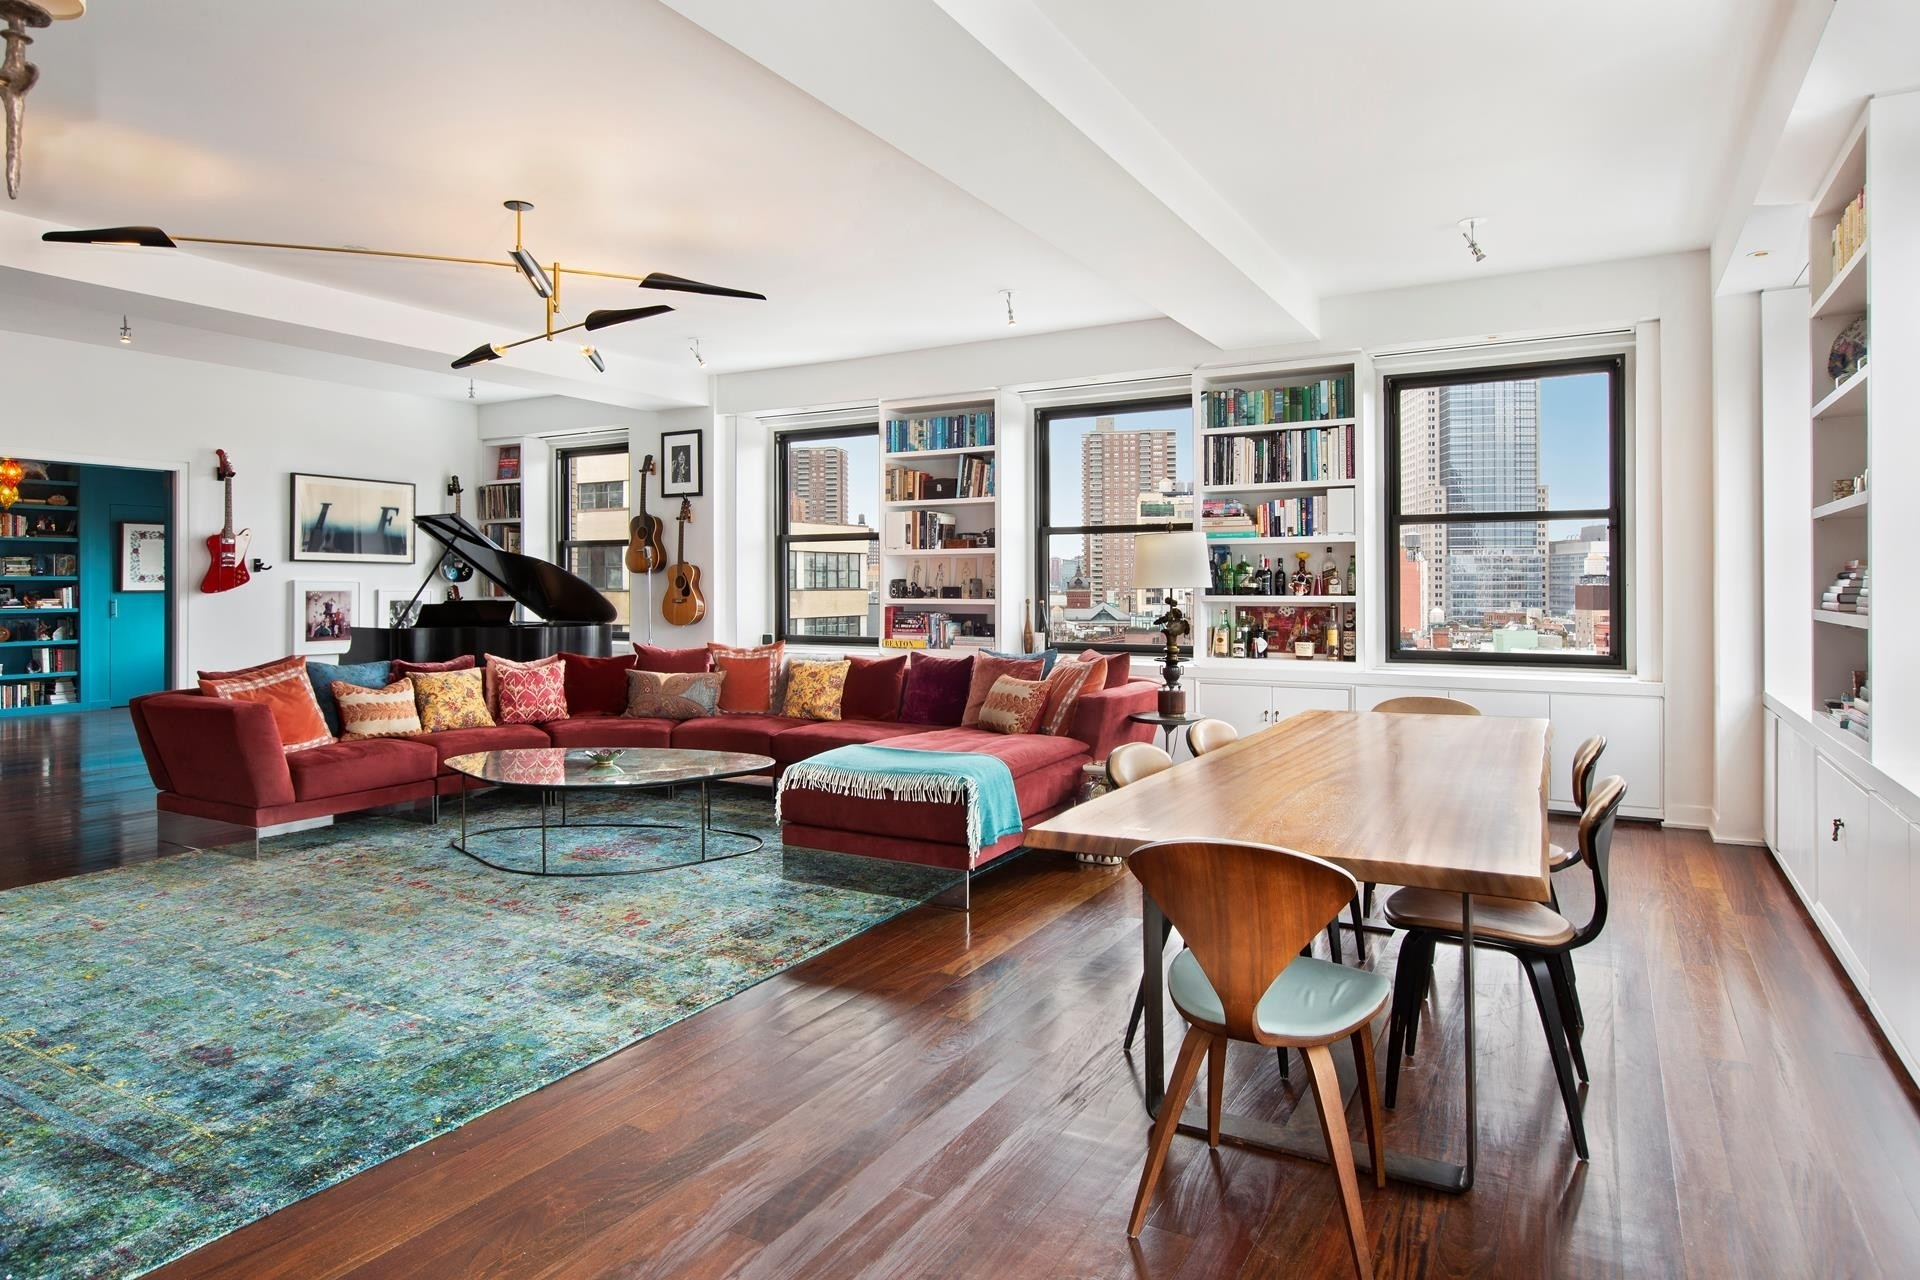 Property at THE FRANKLIN TOWER, 90 FRANKLIN ST , 11THFLOOR TriBeCa, New York, NY 10013